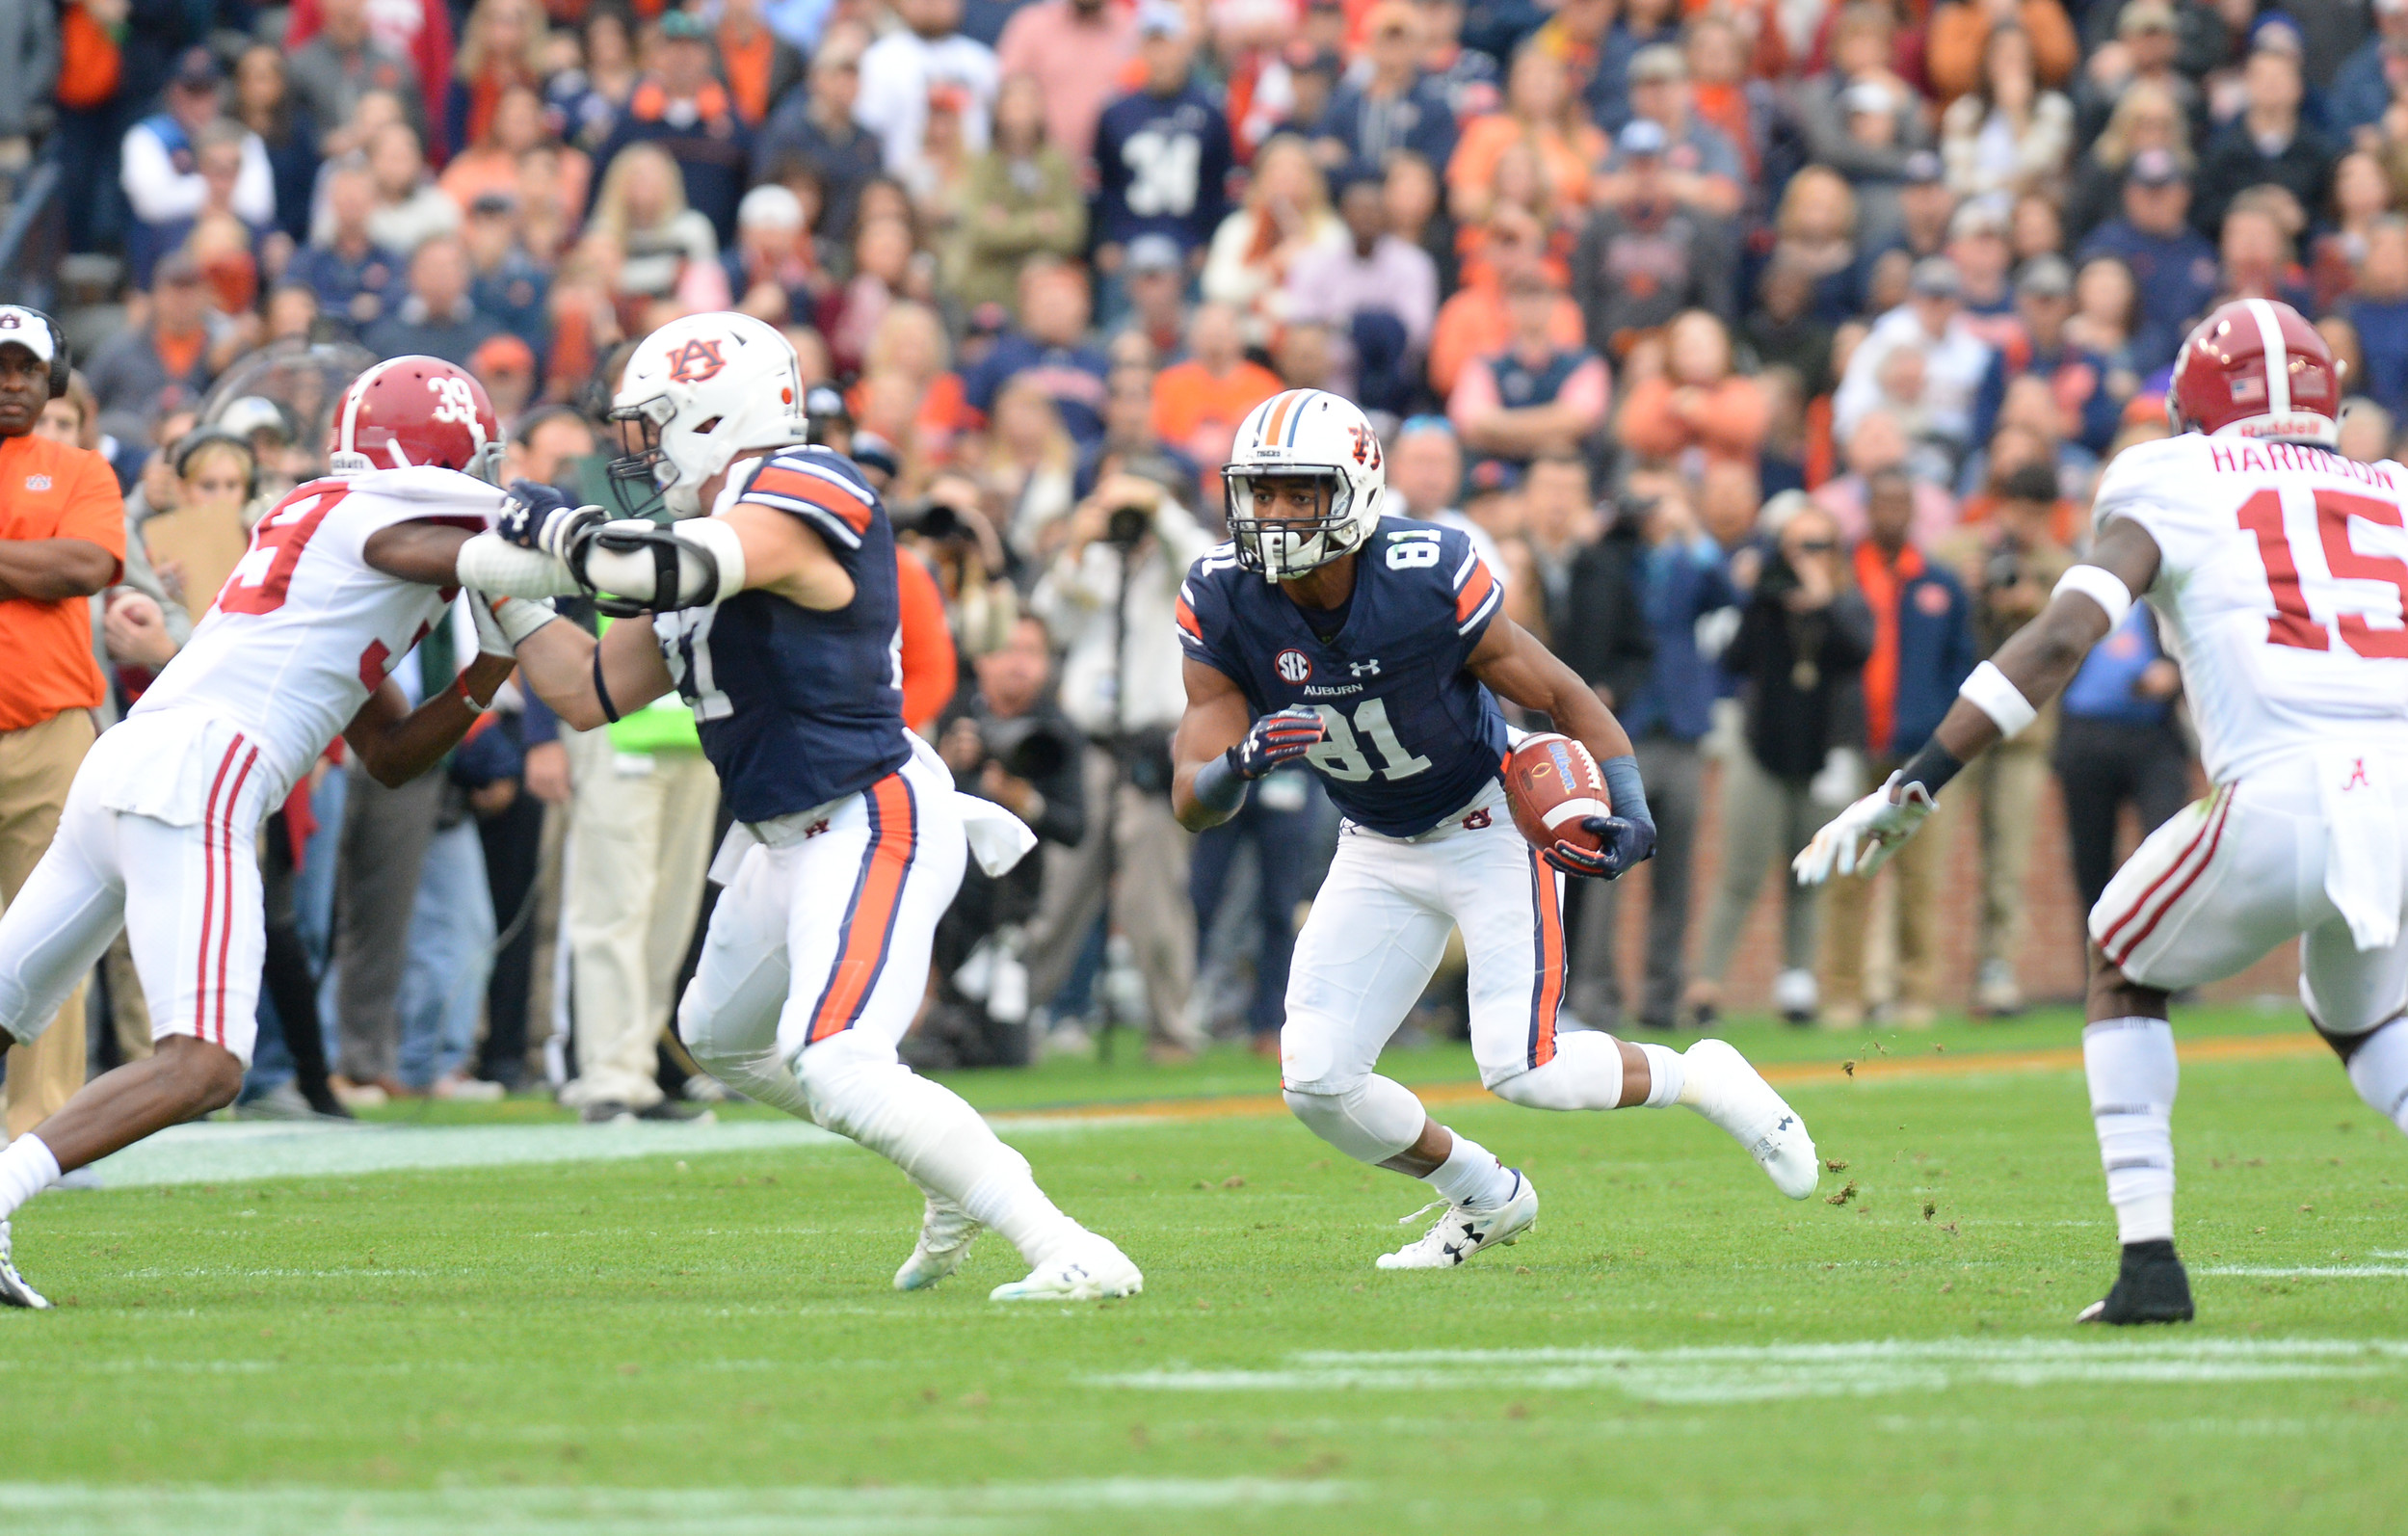 Auburn Tigers wide receiver Darius Slayton (81) runs behind the block of Auburn Tigers fullback Chandler Cox (27) during the first half of Saturday's game, at Jordan-Hare Stadium.